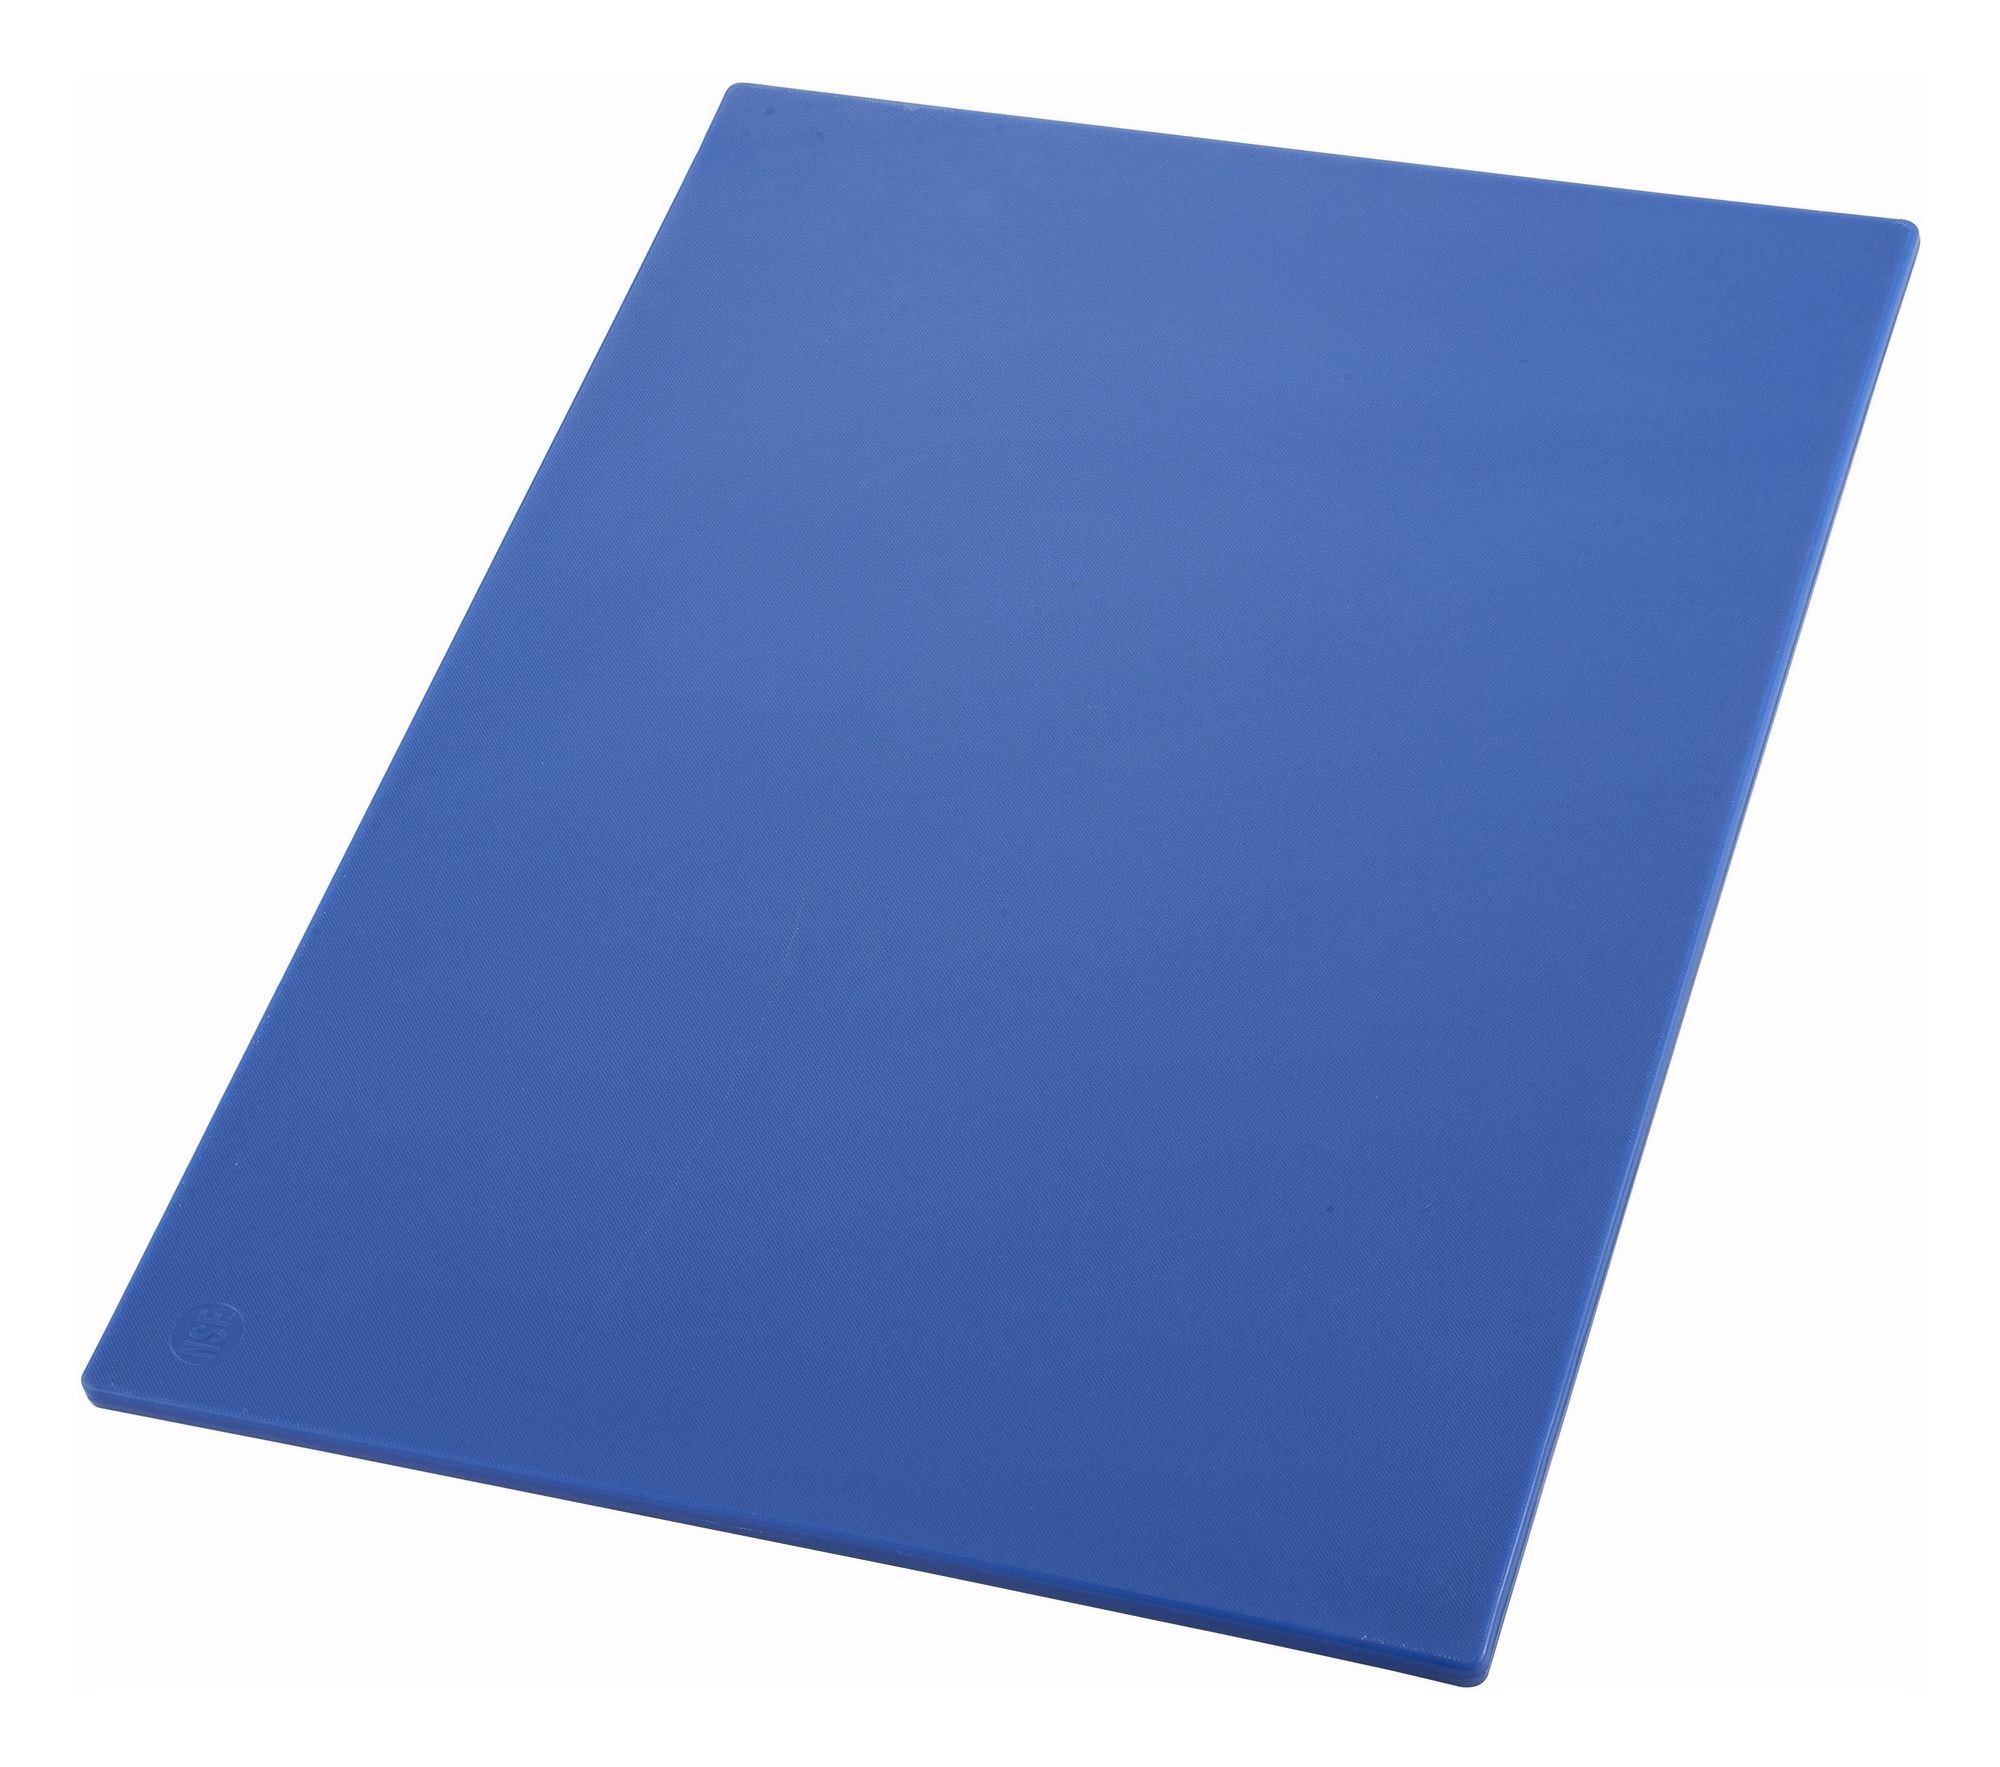 "Winco CBBU-1520 Blue Plastic Cutting Board 15"" x 20"" x 1/2"""